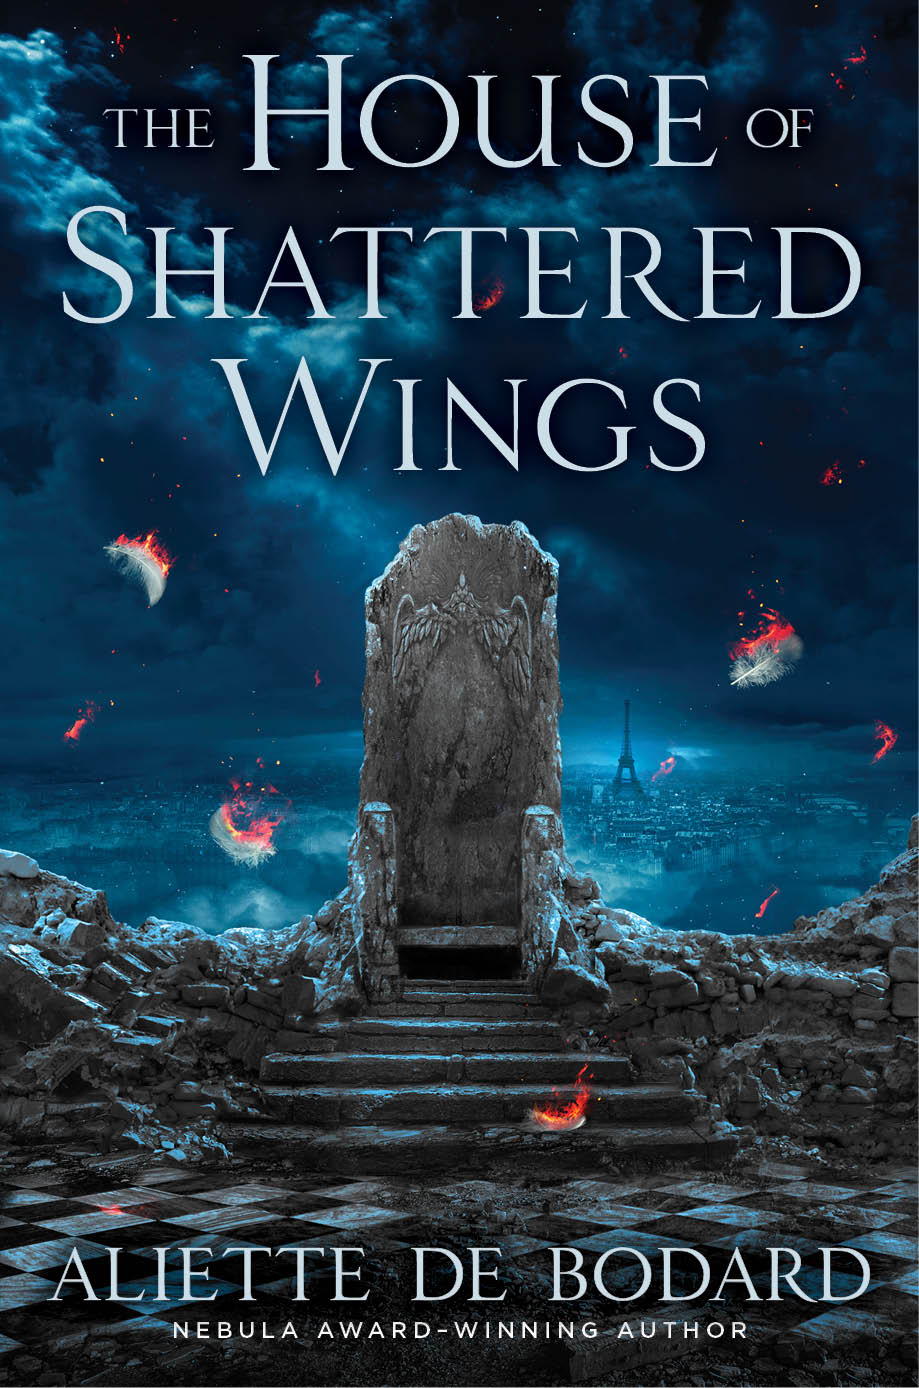 Image result for house of shattered wings